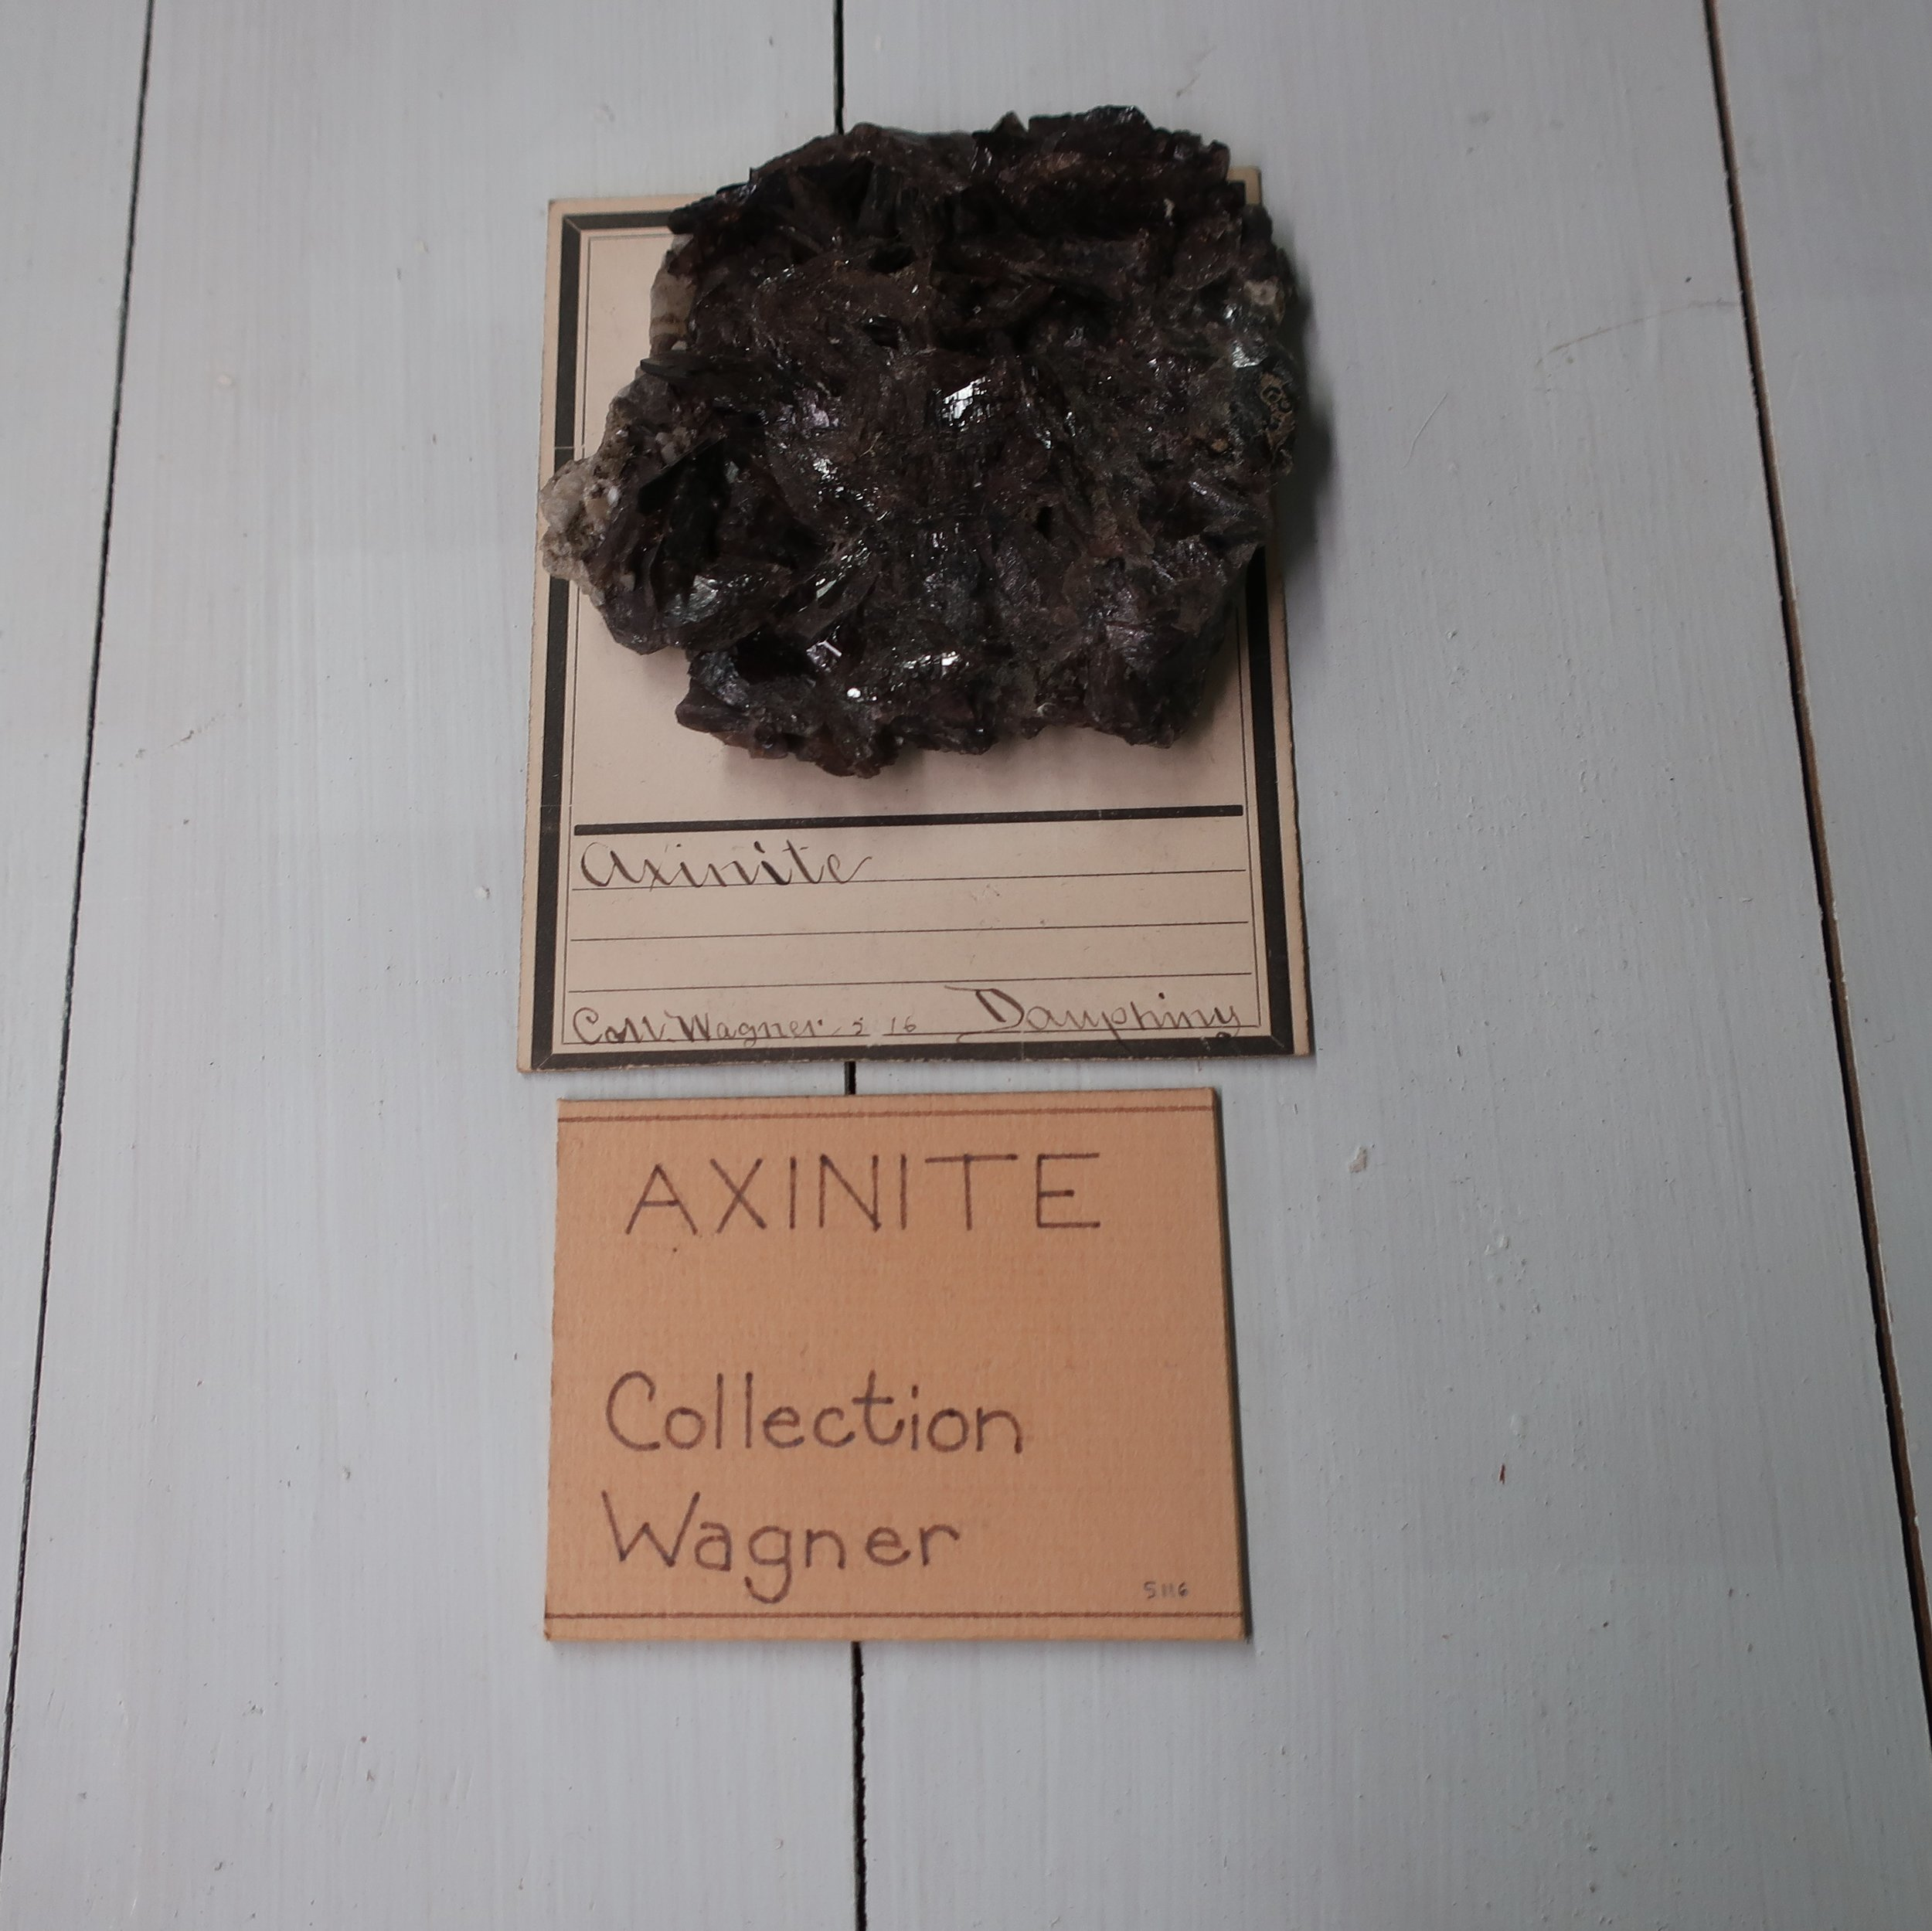 """ Axinite  contains Silica 50, Alumina 16, Lime 17, Iron 9 Manganeese 5. Sp. Gr. 3.27. This mineral rarely occurs massive, more frequently in flat, oblique rhomboidal prisms, whose edges are remarkable sharp. Common colour violet, or clove brown, also yellow, and green, from an admixture of Chlorite. Externally the crystals are remarkably brilliant becomes electric by exposure to heat. BB it fuses readily into a green glass. It is not acted on by acid. It occurs in Saxony, and the Pyrenees, the finest crystals are found in Dauphiné in France, but one locality has been found in the U States, at Phippsburg Maine."""